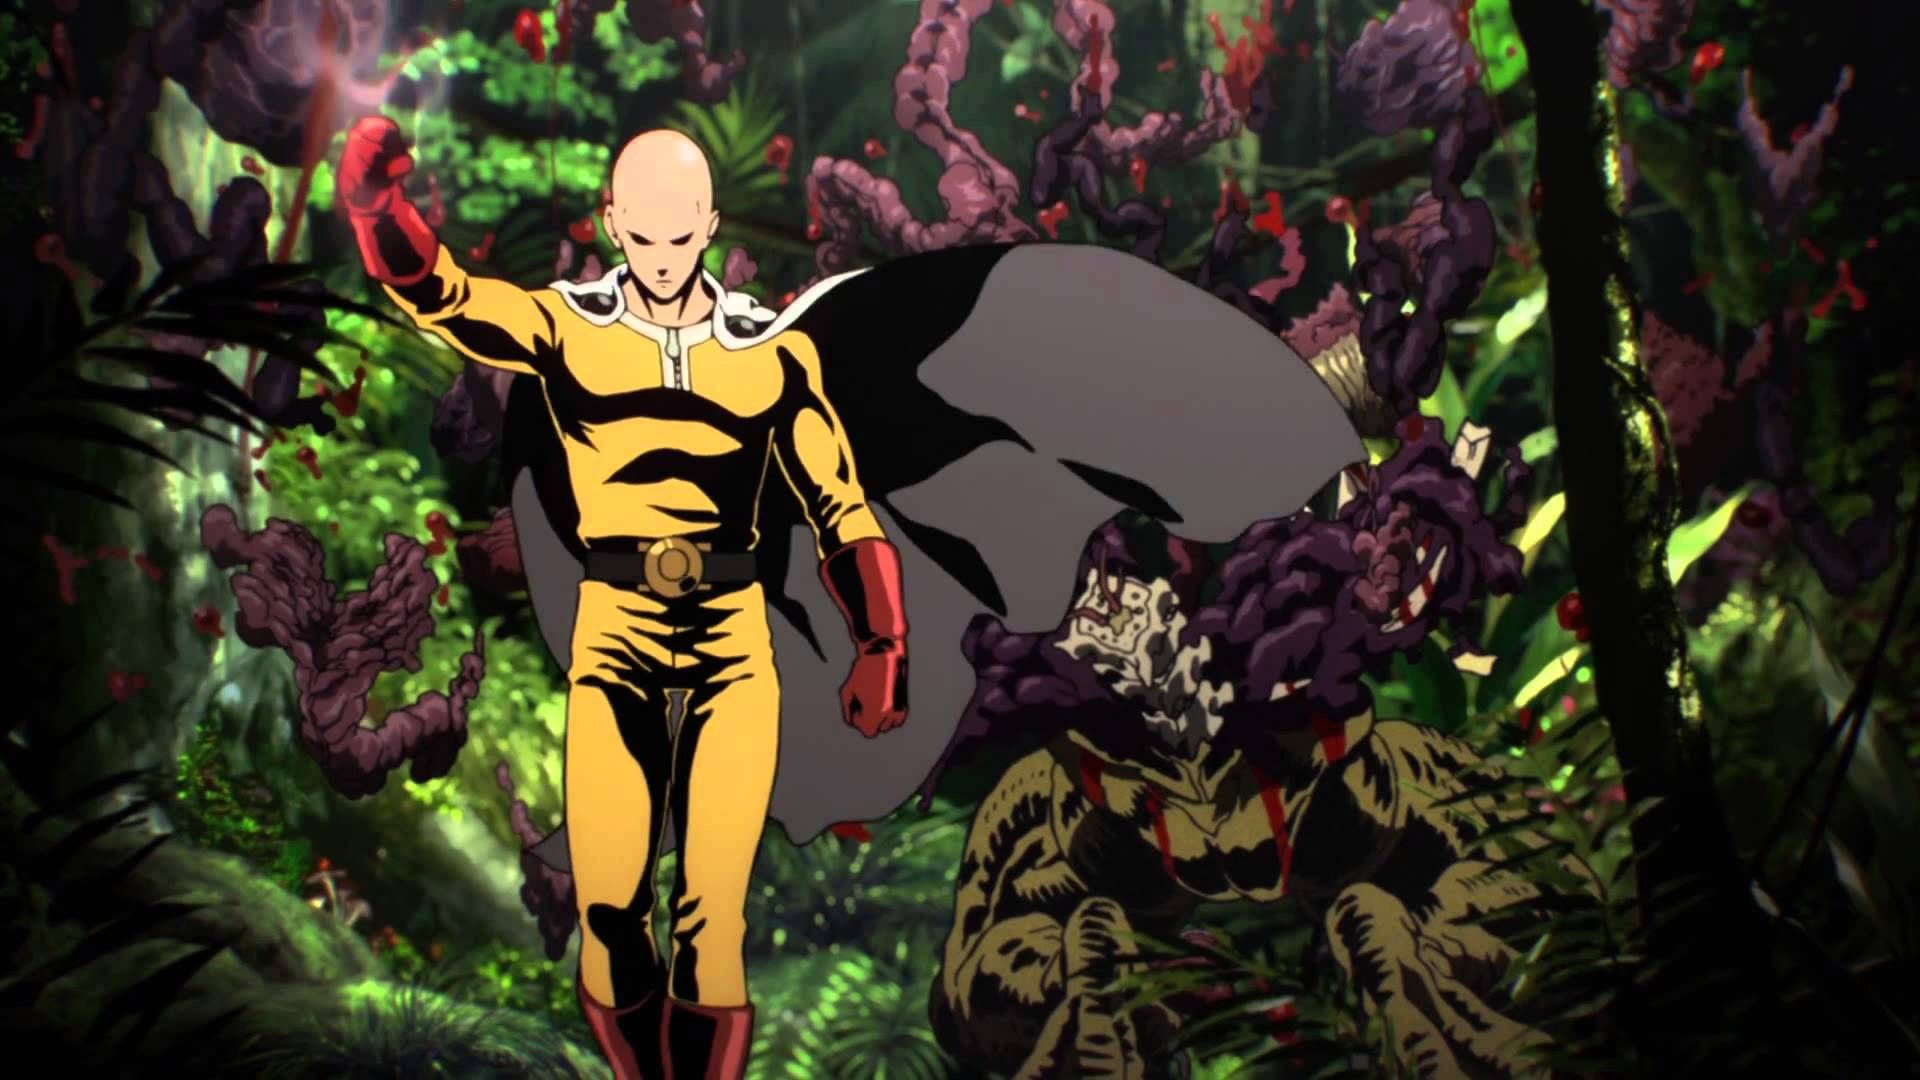 One Punch Man Official Opening The Hero Set Fire To The Furious Fist Performed By Jam Project One Punch Man Anime One Punch Man One Punch Man Manga